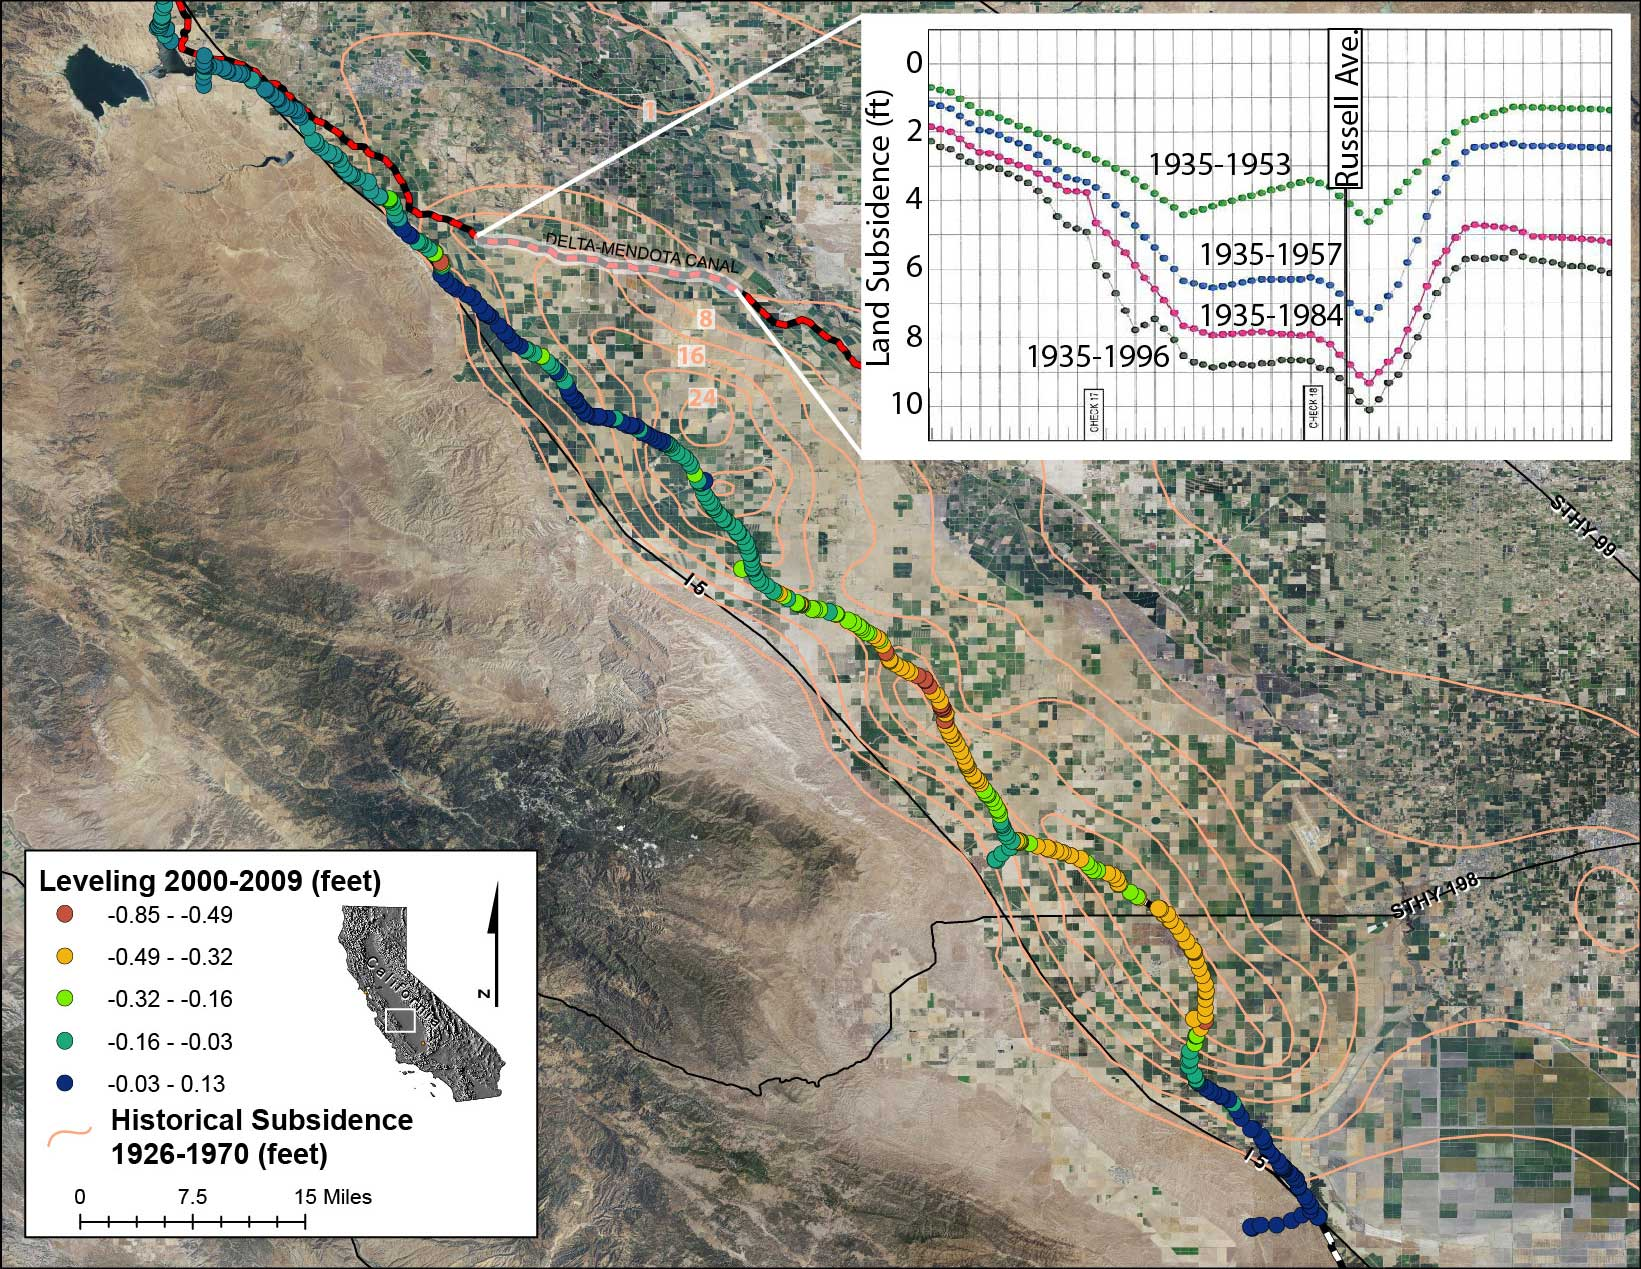 leveling data along the Delta-Mendota Canal obtained by the California Department of Water Resources.